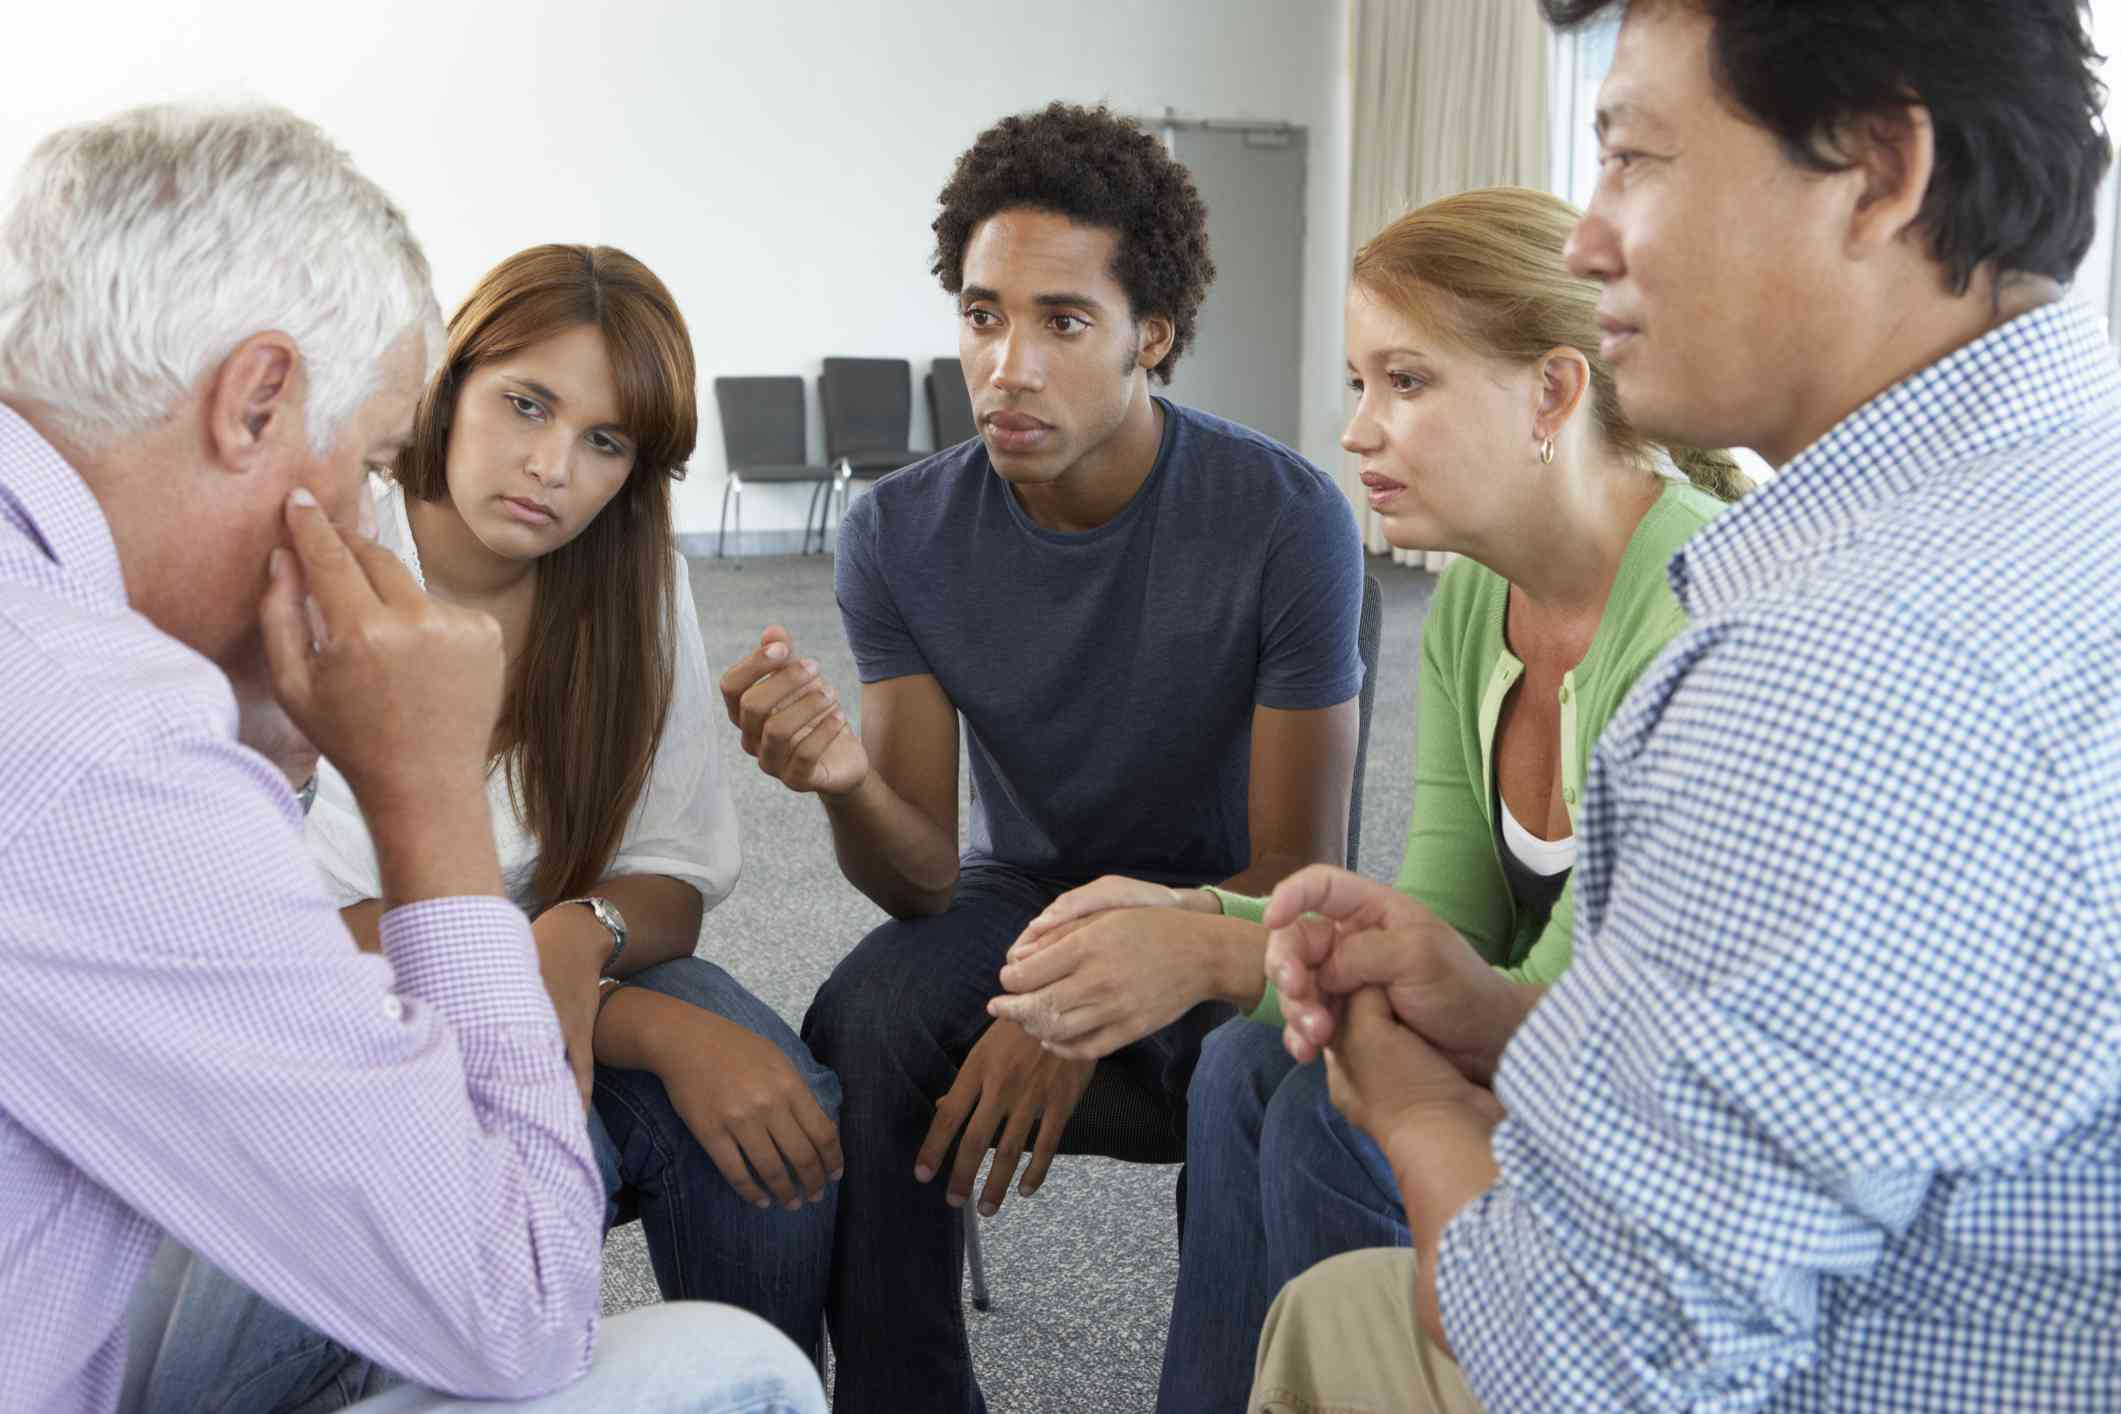 A support group focused on a man's issue